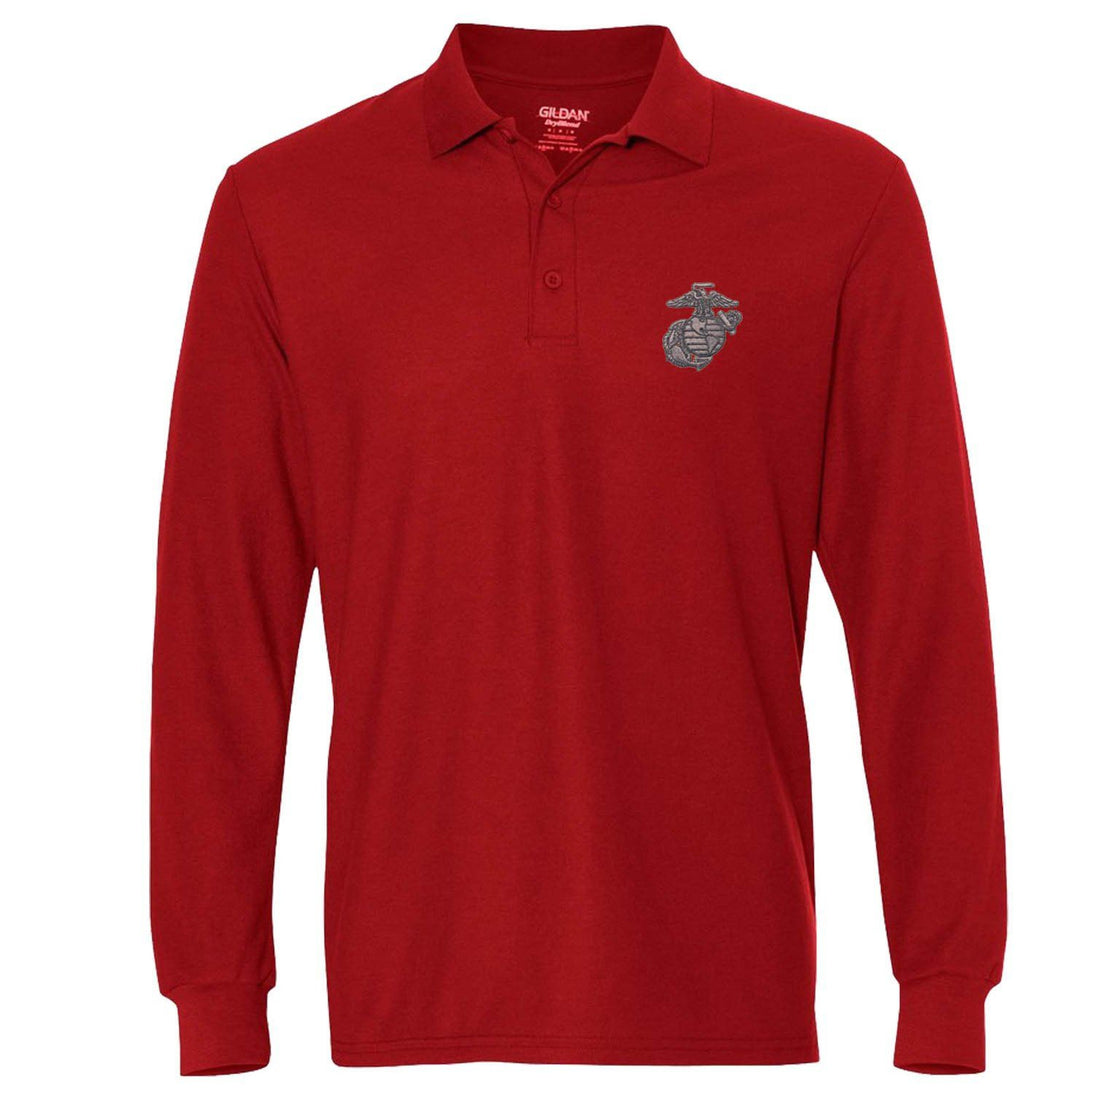 Gunmetal Embroidered Long Sleeve Polo (MULTIPLE COLORS) - Marine Corps Direct  - 2